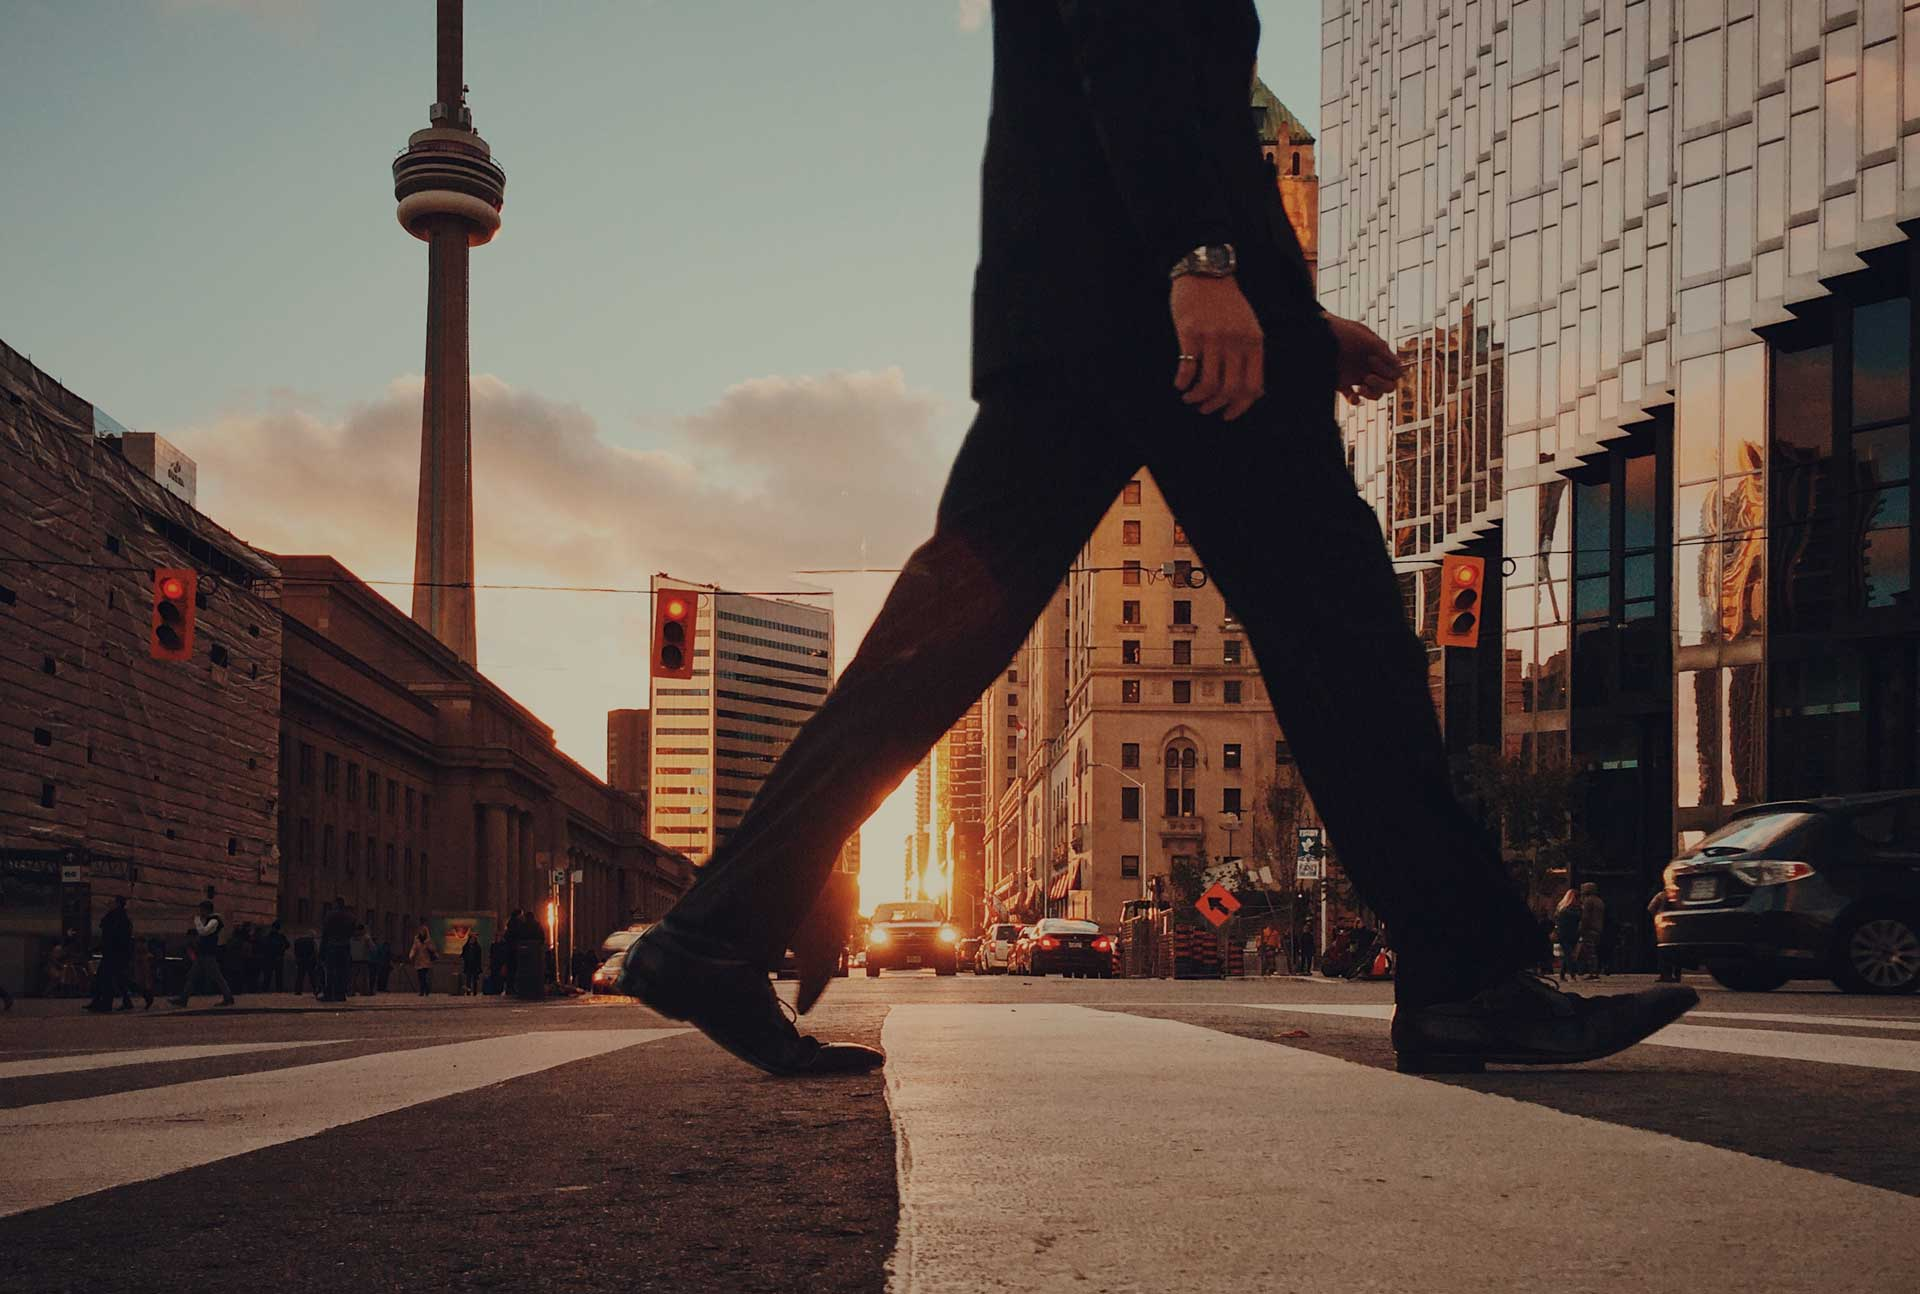 street level view of man in suit crossing road at sunset with toronto cn tower in the background